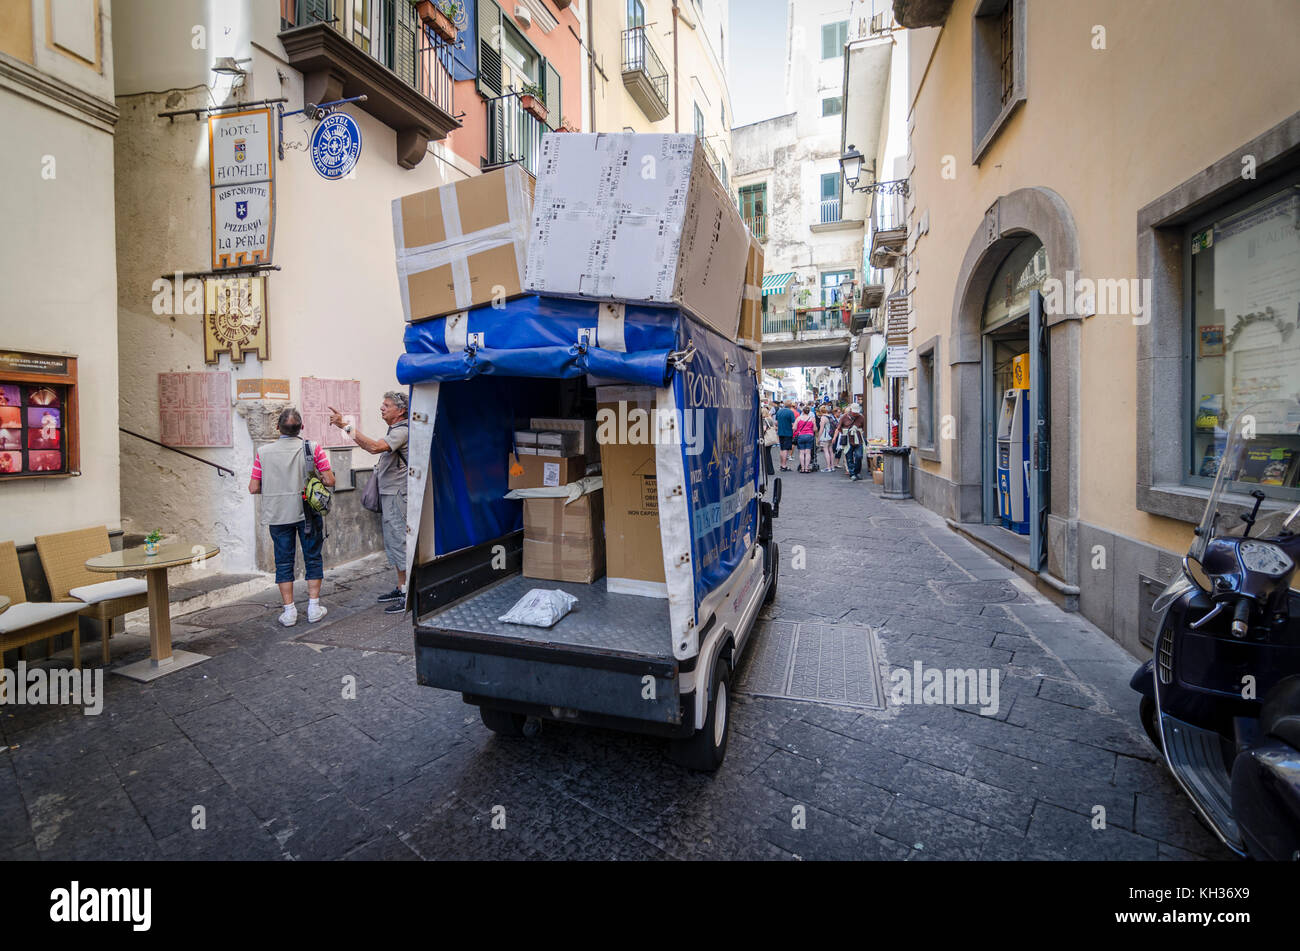 Small electric vehicle EV delivering parcels through the narrow historic streets in the town of Amalfi in Italy - Stock Image